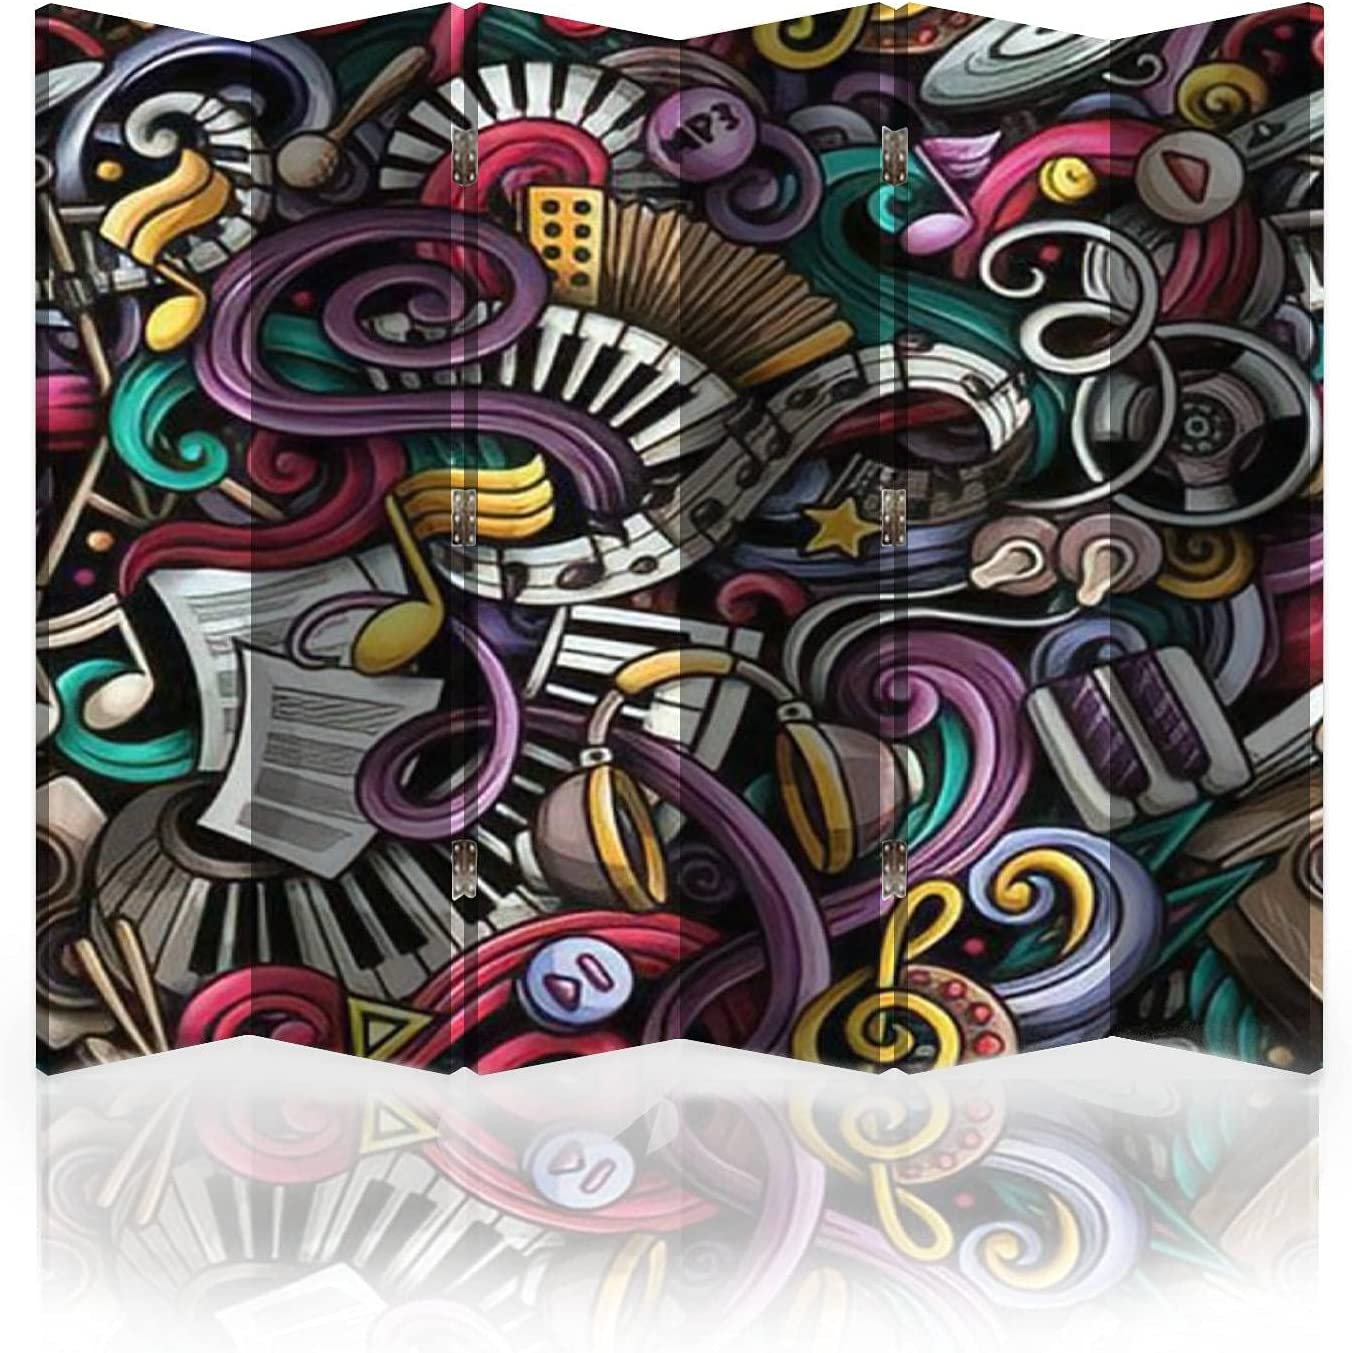 Canvas Room Divider Screen Music Drawn Doodles Pat Hand Seamless Limited time cheap sale Luxury